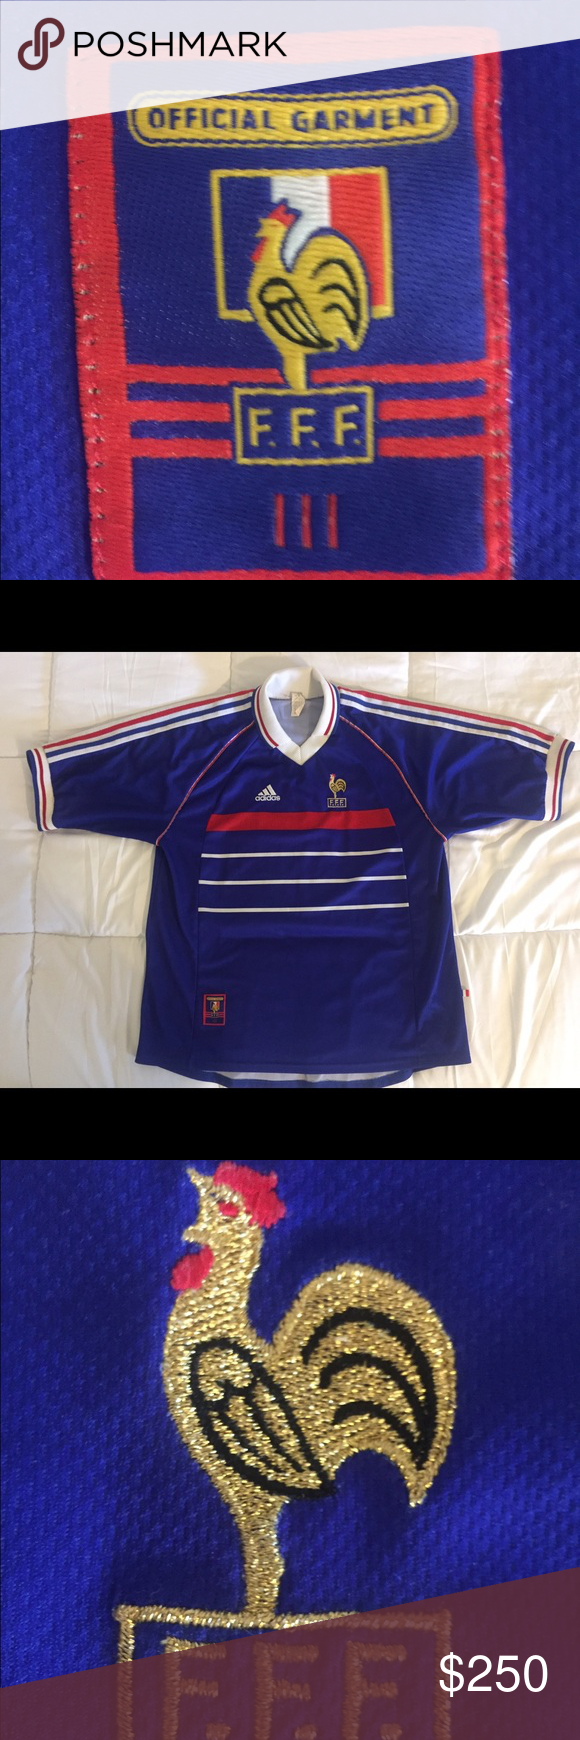 bbc2f8eb39 Vintage Adidas France 98 World Cup Jersey Collectors item. Wear a piece of  history with this France 1998 World up Jersey. The year that made history  by a ...